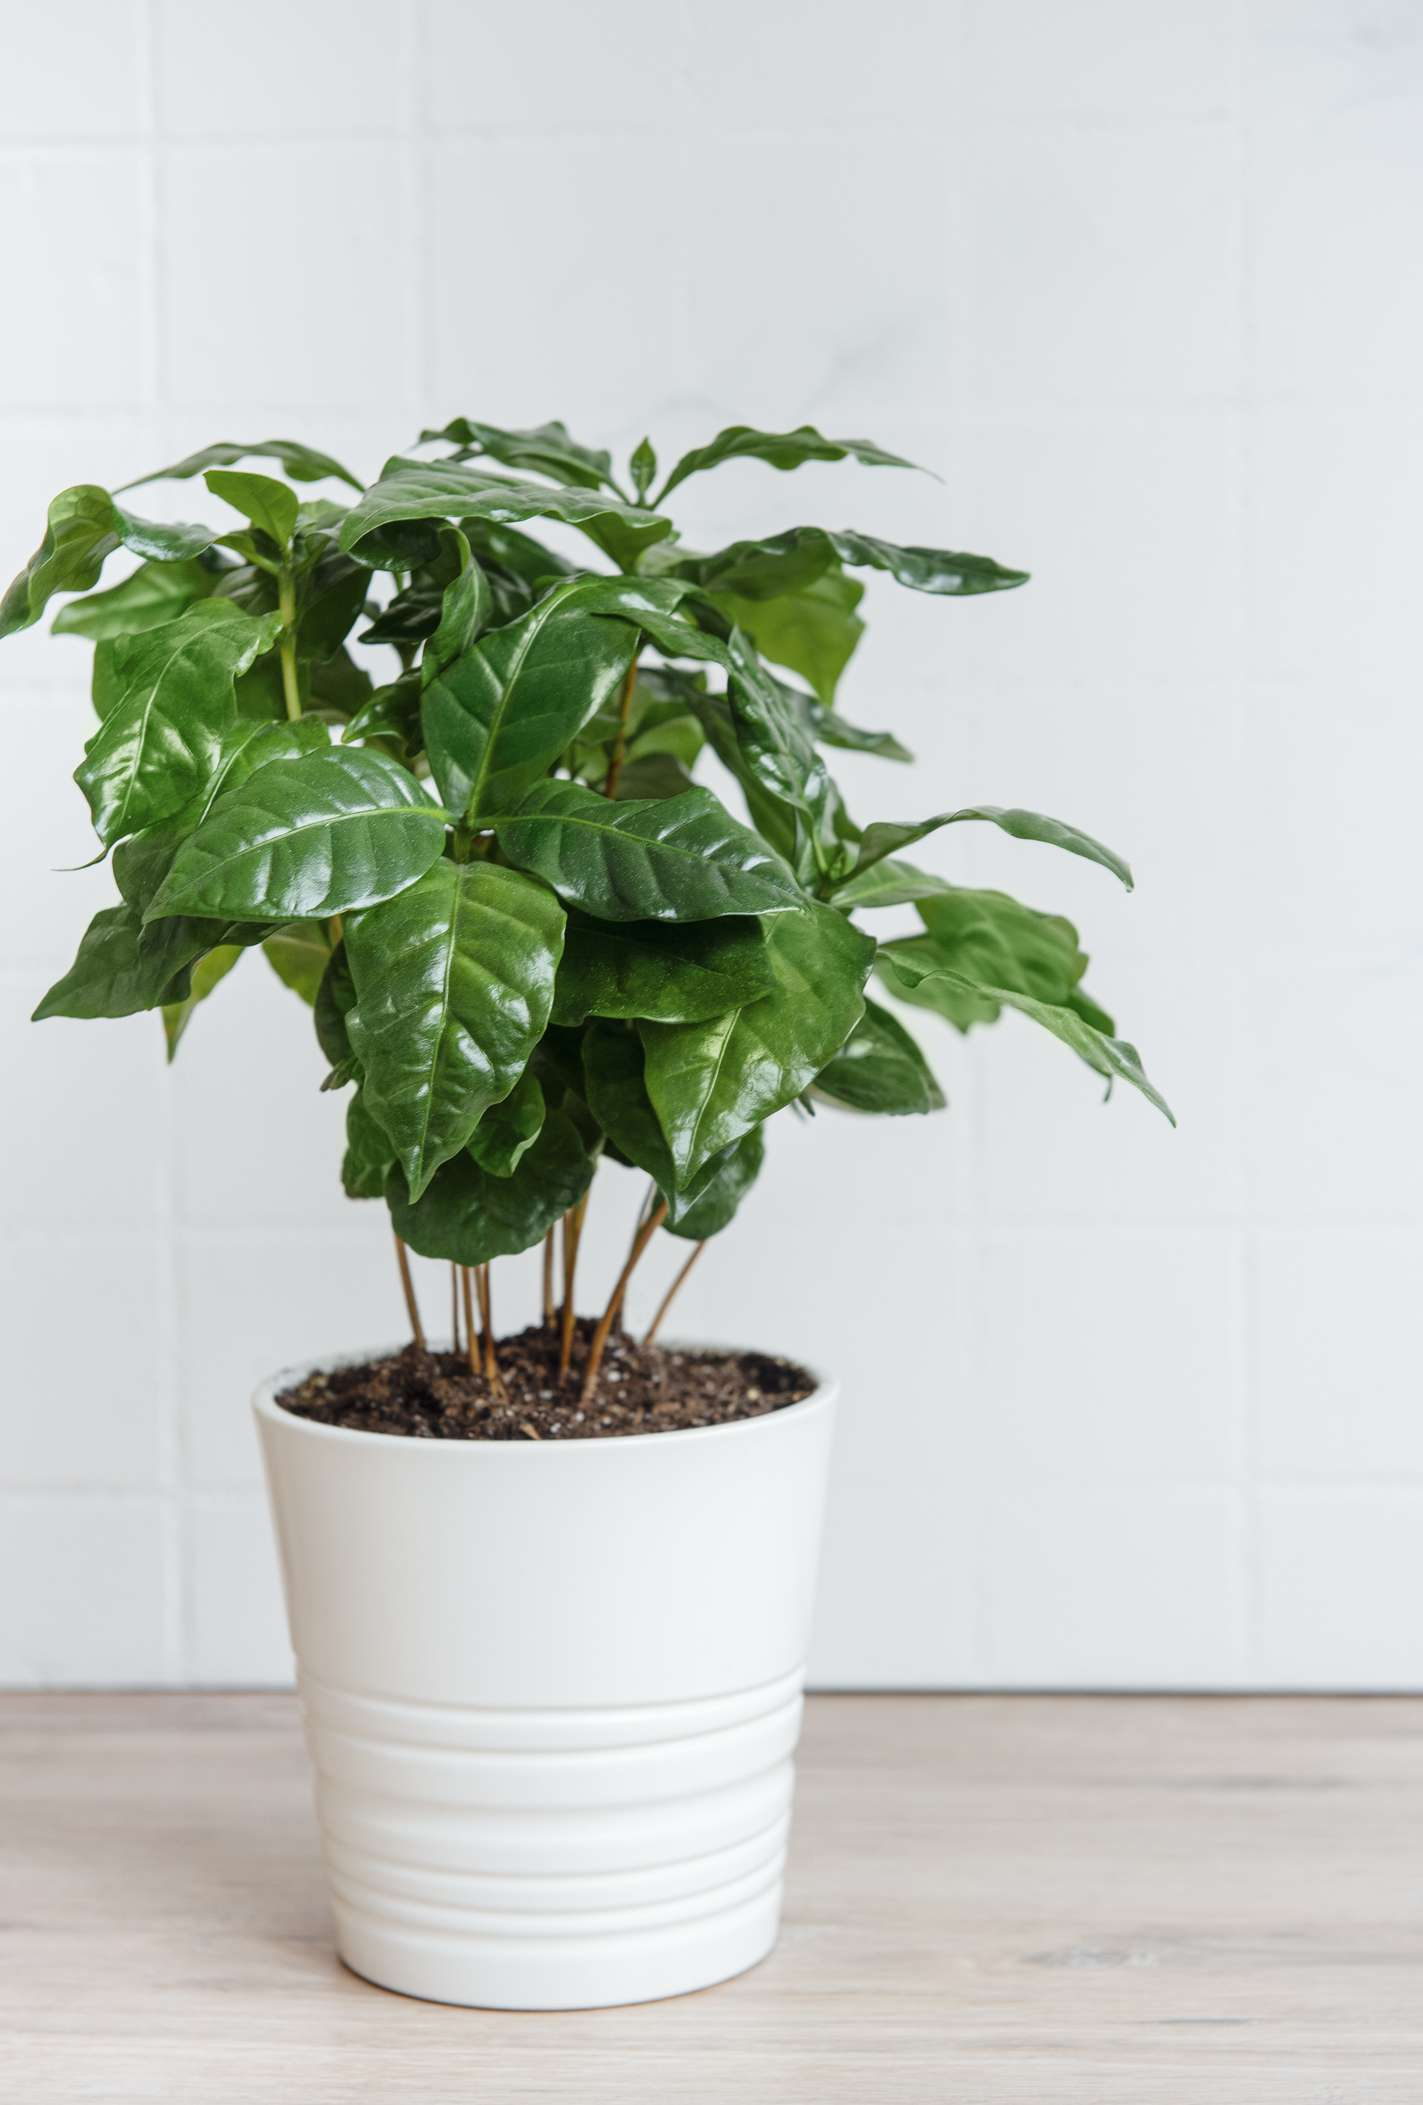 Coffee plant growing in fresh pot